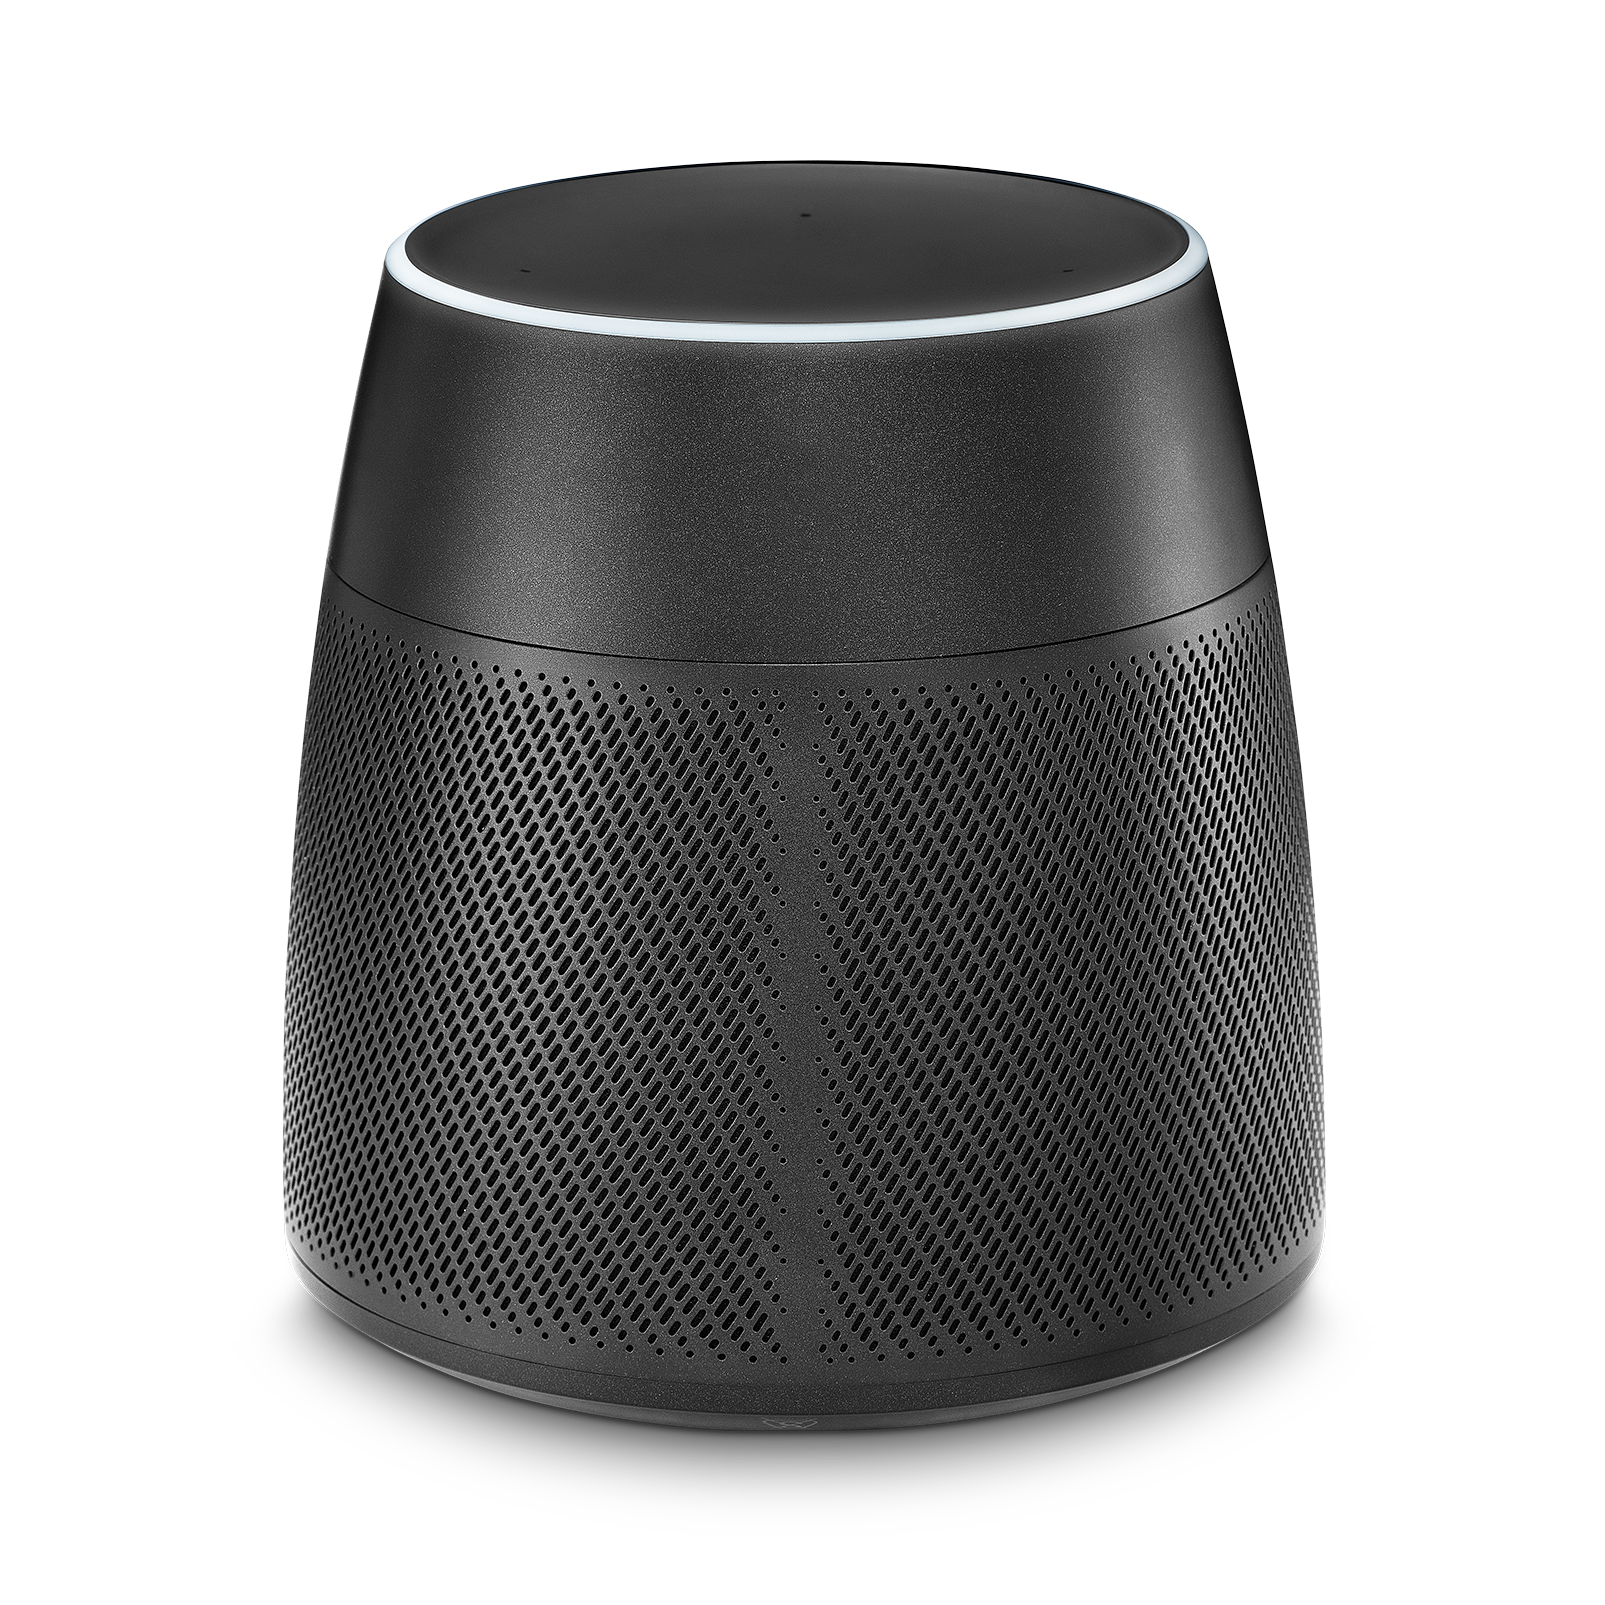 Harman Kardon Astra - Black - Voice-activated speaker - Back